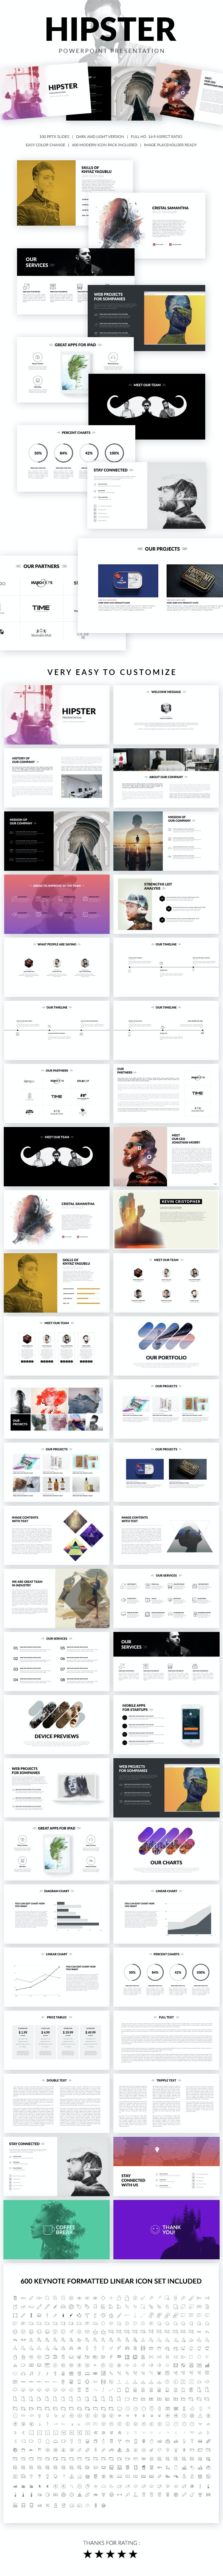 Hipster Powerpoint Presentation Template - PowerPoint Templates Presentation Templates